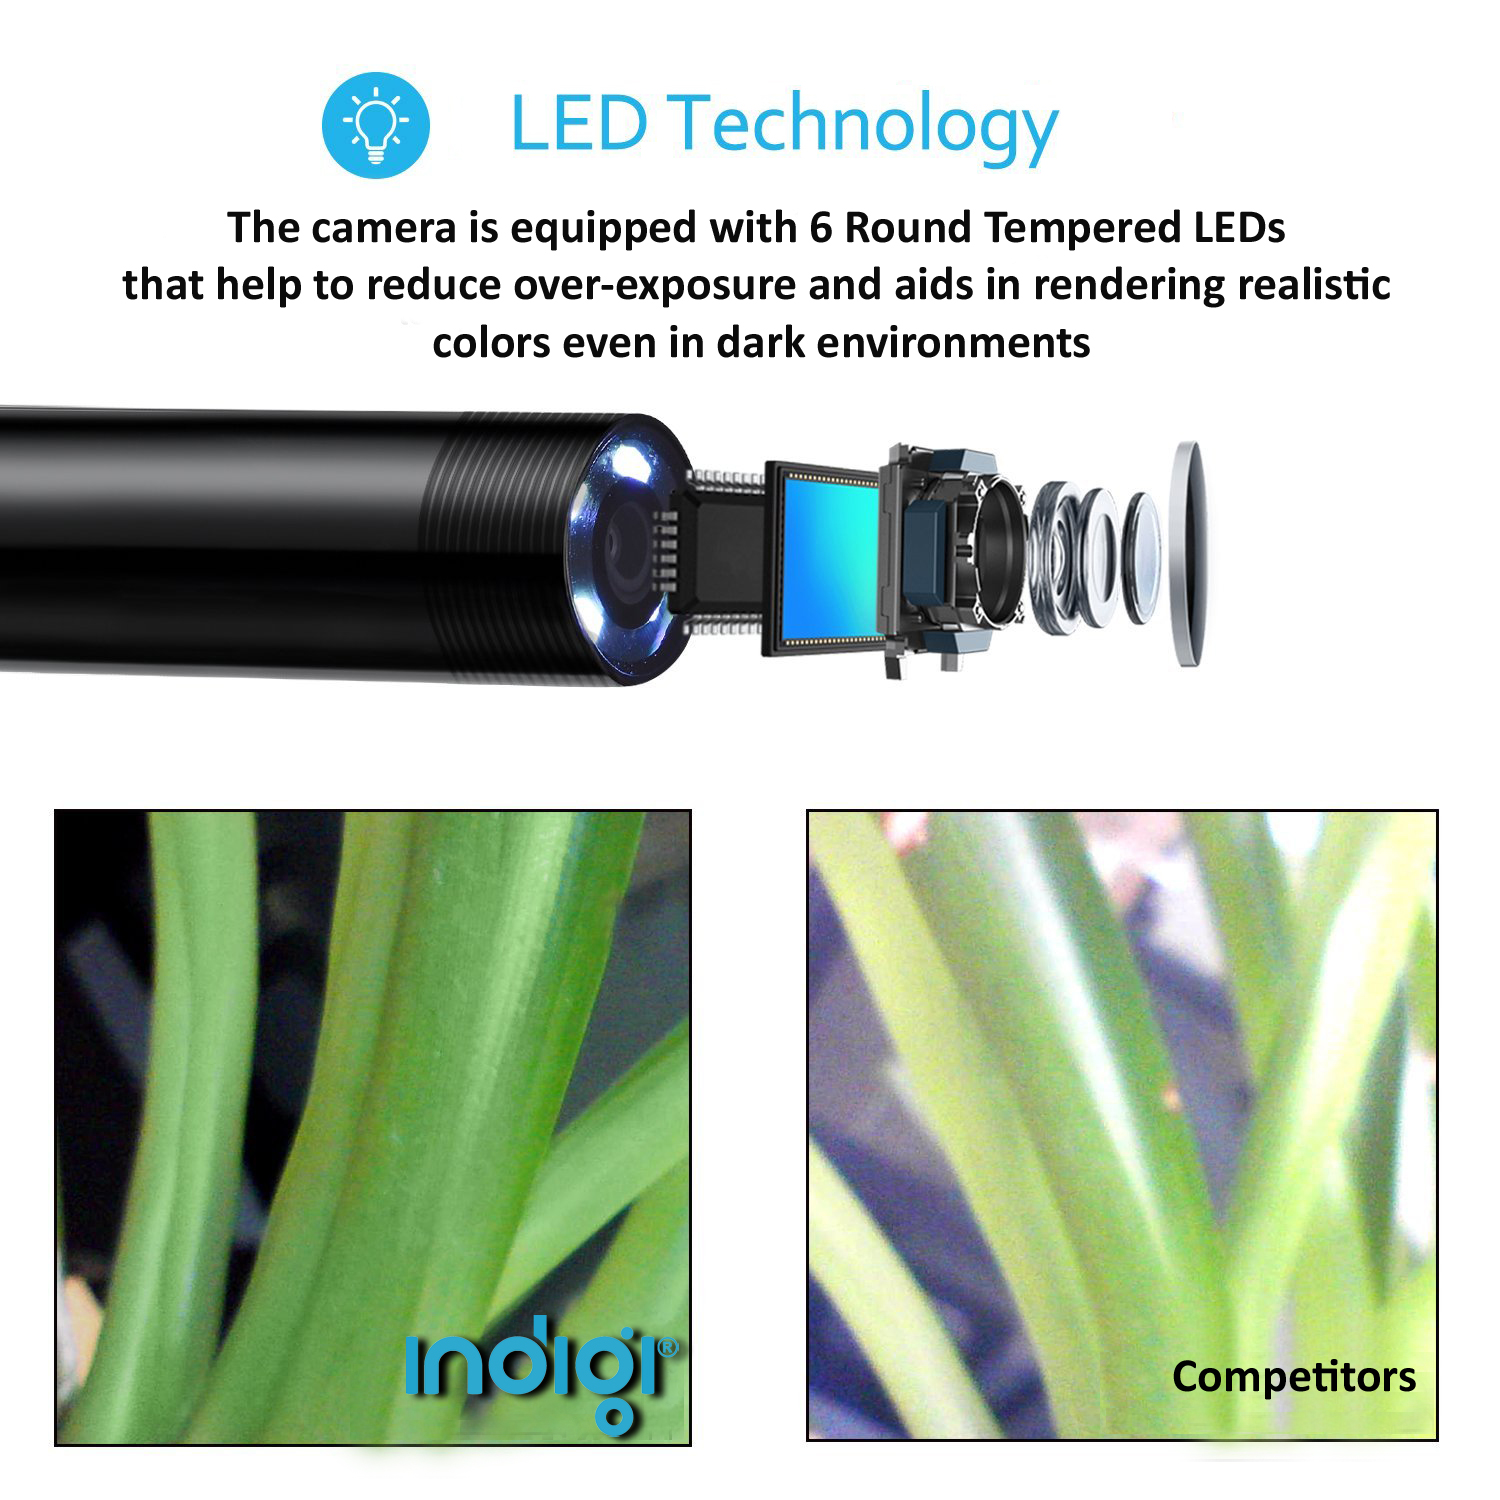 HD Waterproof Wireless Inspection/Diagnostic Camera by Indigi® [ 1M Length - 8x Adjustable LEDs - iOS & Android ] - image 4 of 5